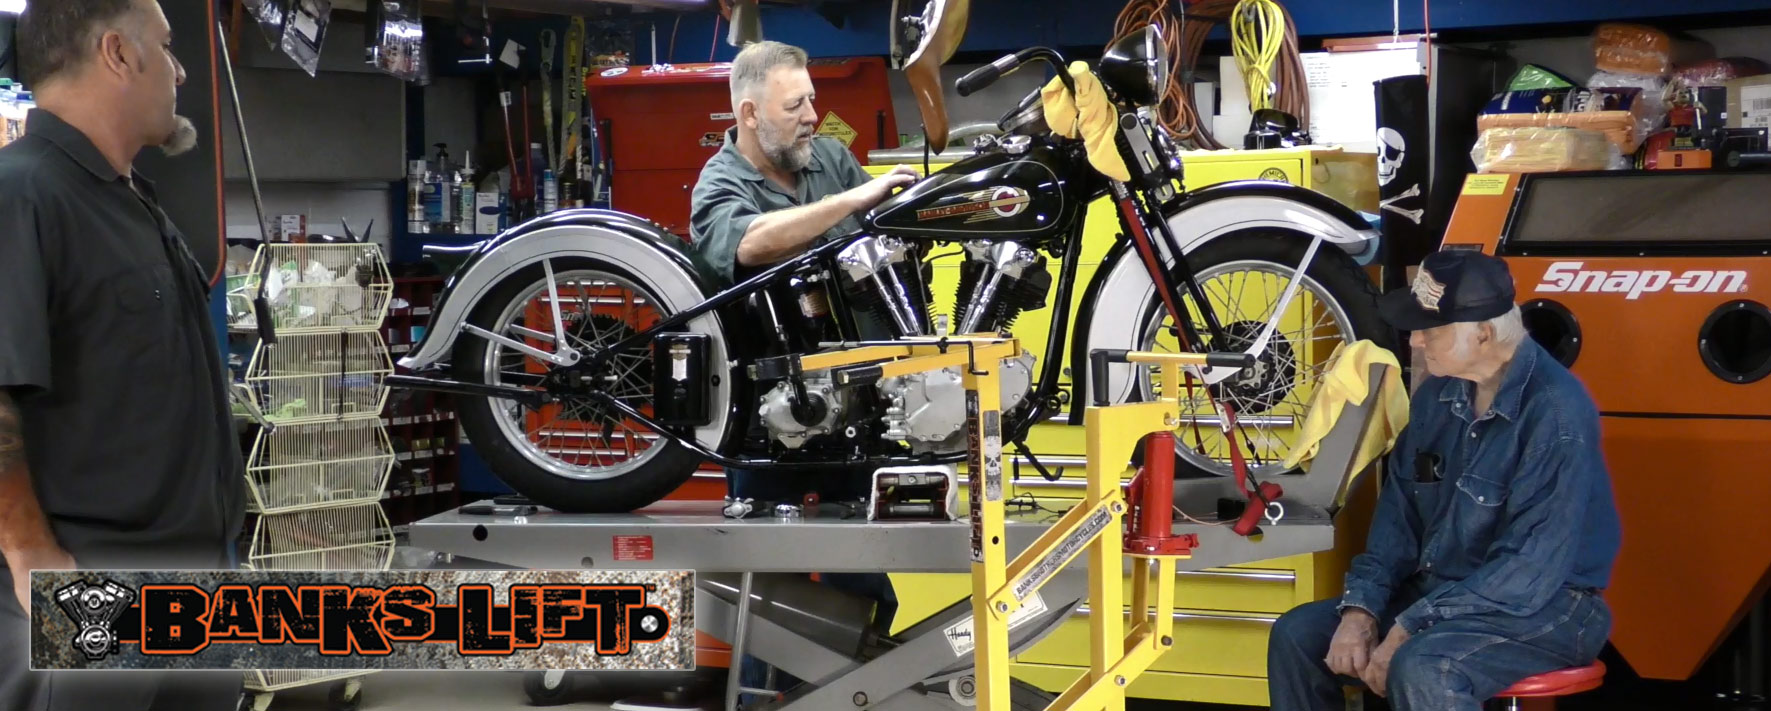 Lifft (crane) to remove Harley-Davidson Engine